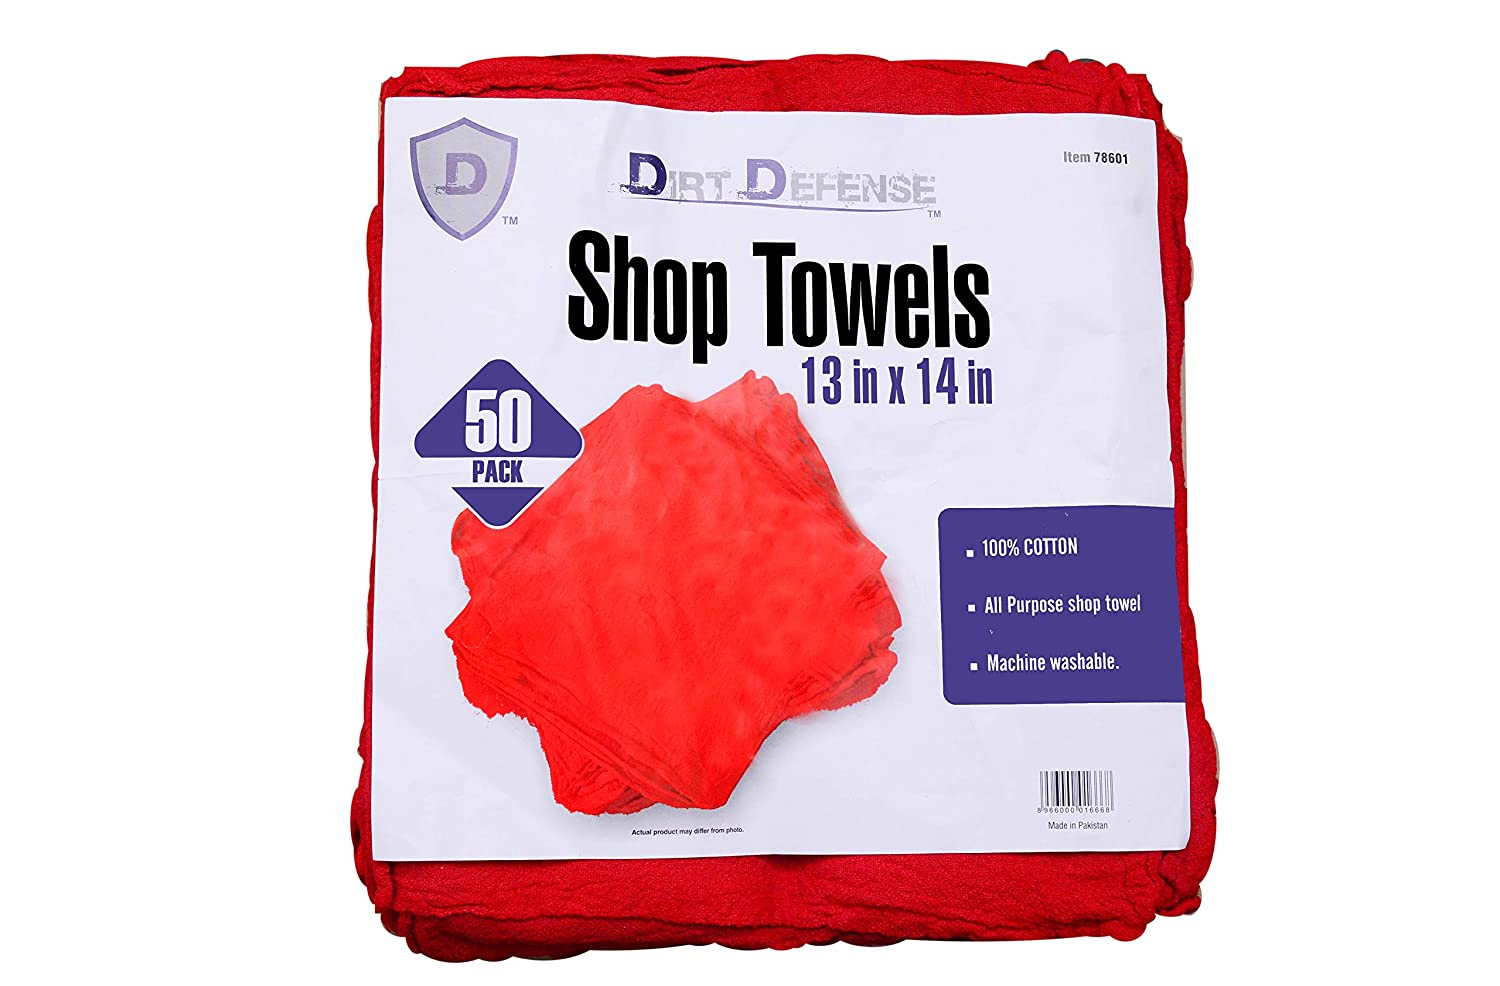 Dirt Defense Industrial Grade Red Shop Towel 50 pcs Pack for Auto Mechanic Work